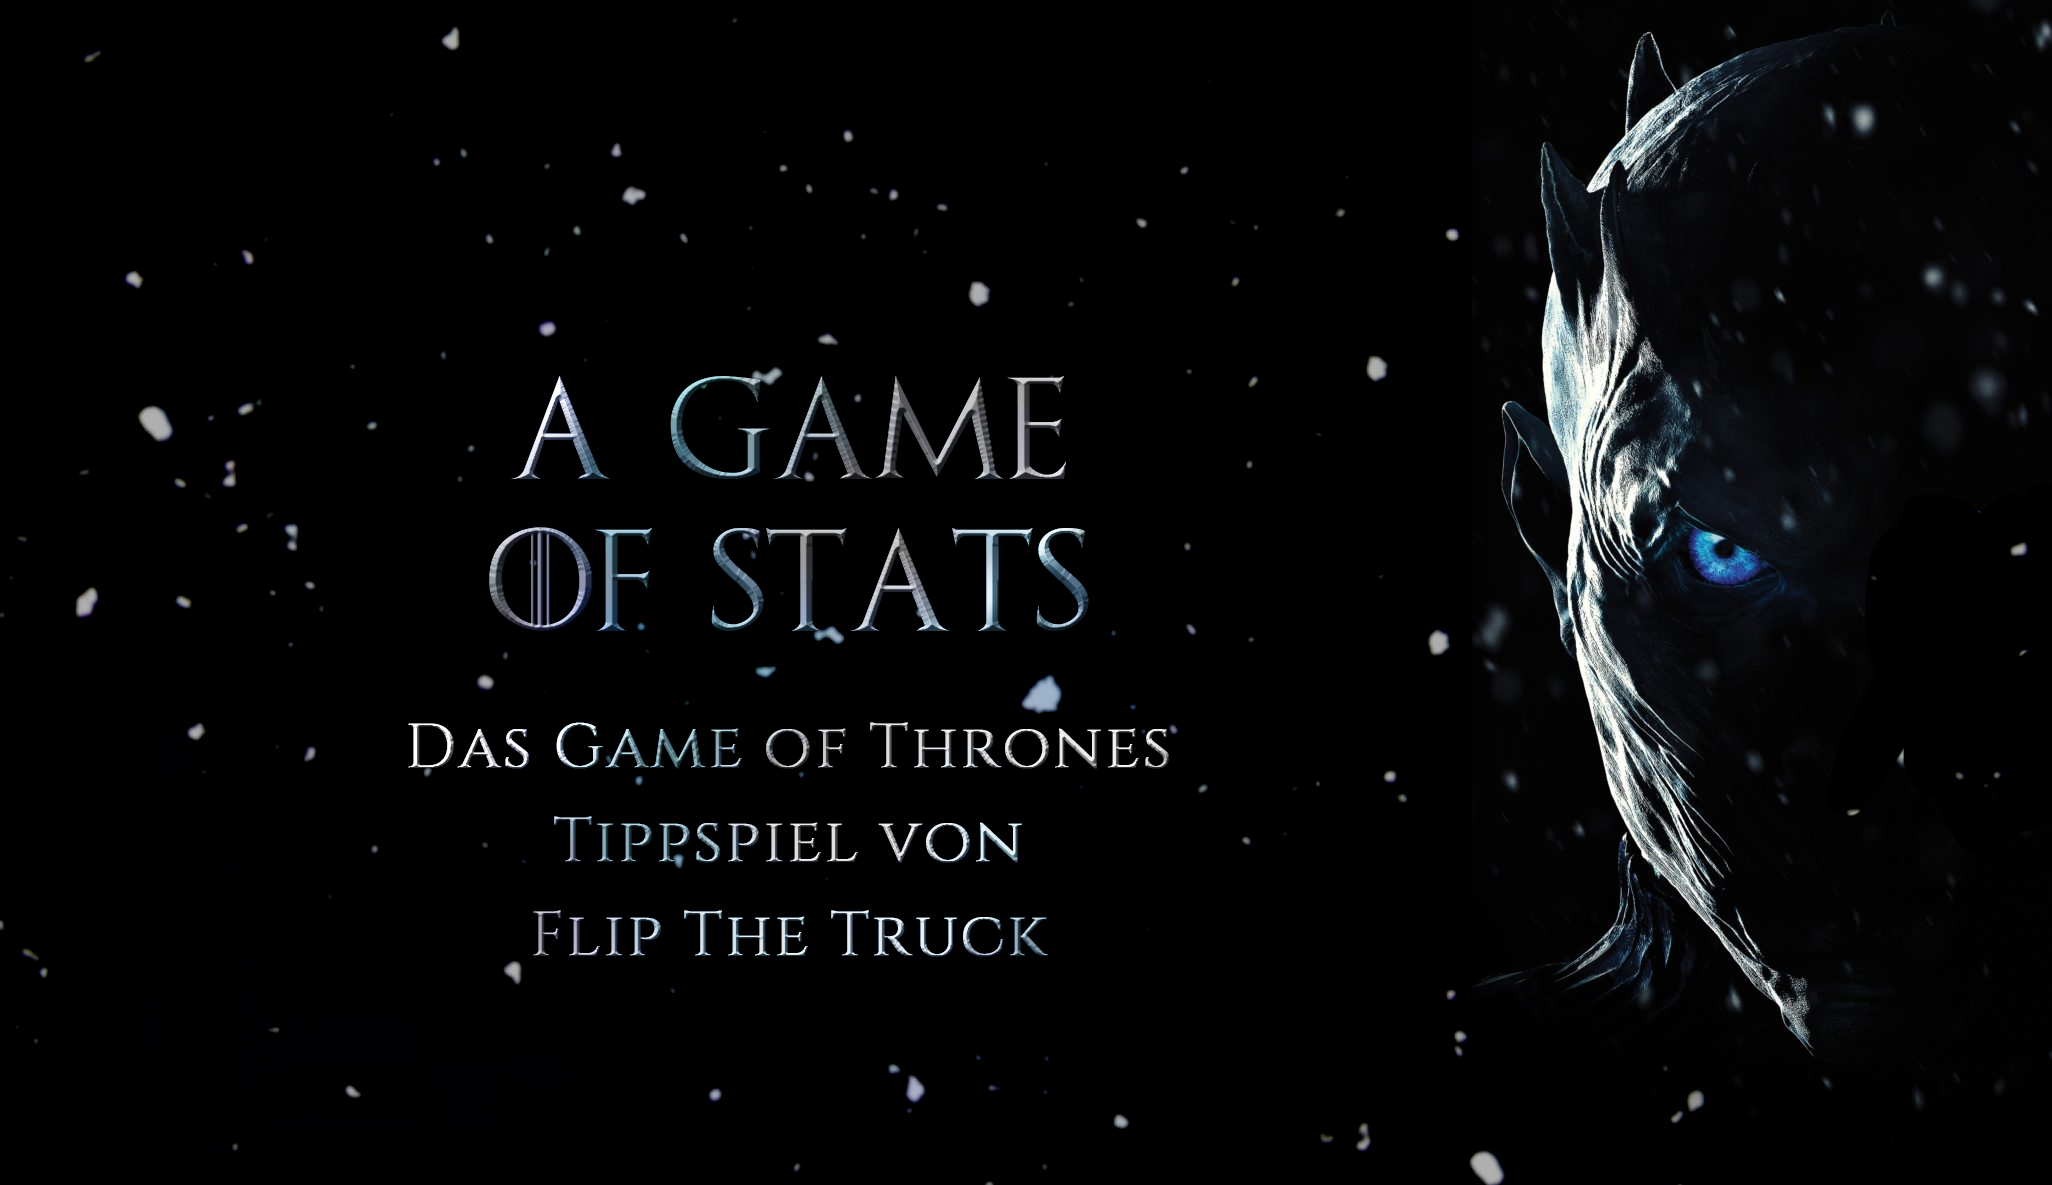 A Game of Stats | Flip the Truck |